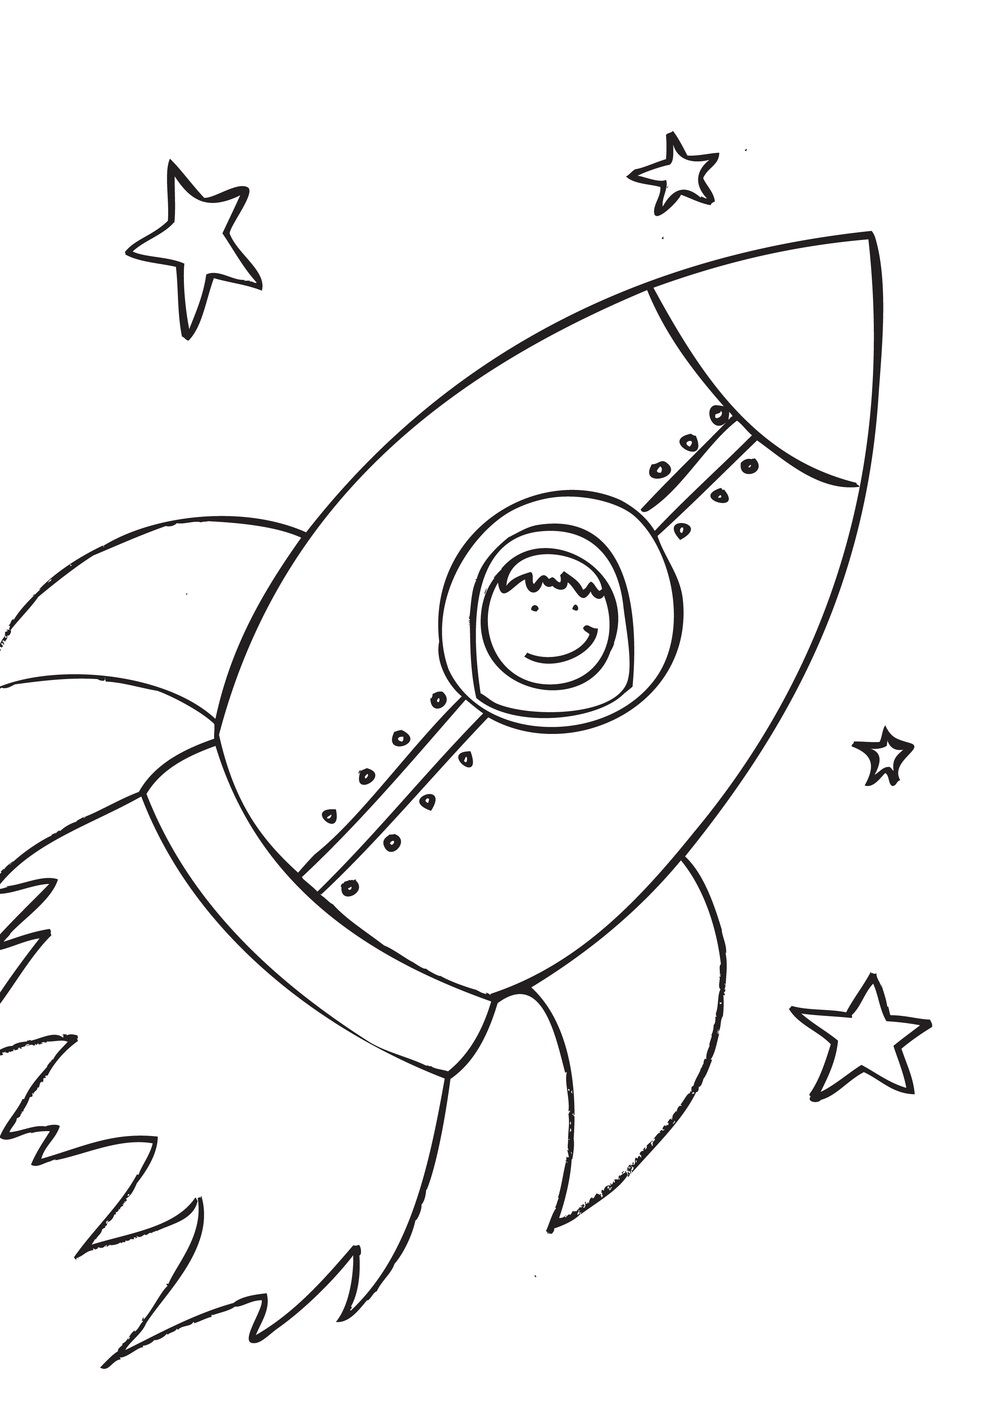 Rocket Coloring Page Printable Pages Space Coloring Pages Printable Rocket Ship Printable Rocket